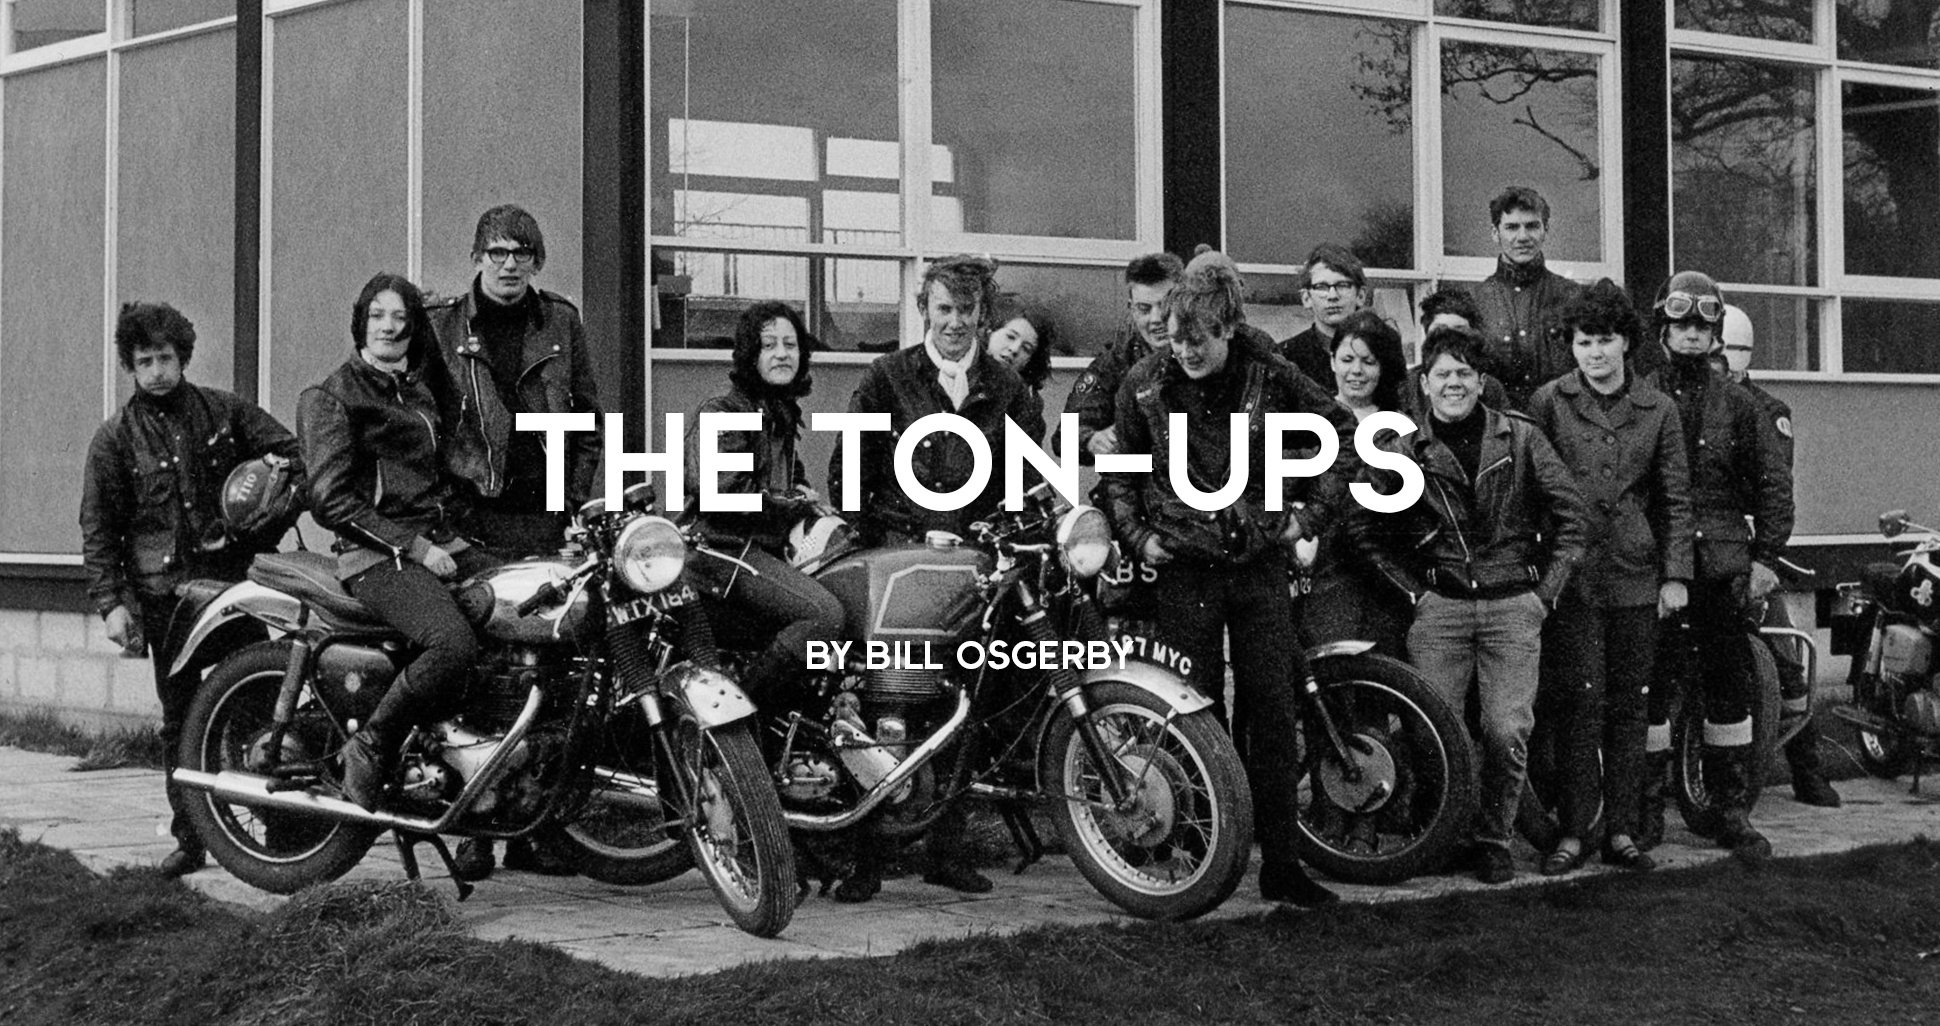 group of male and female bikers and rockers from the 59 club in leather jackets on their motorcycles during a ride out, 1960s